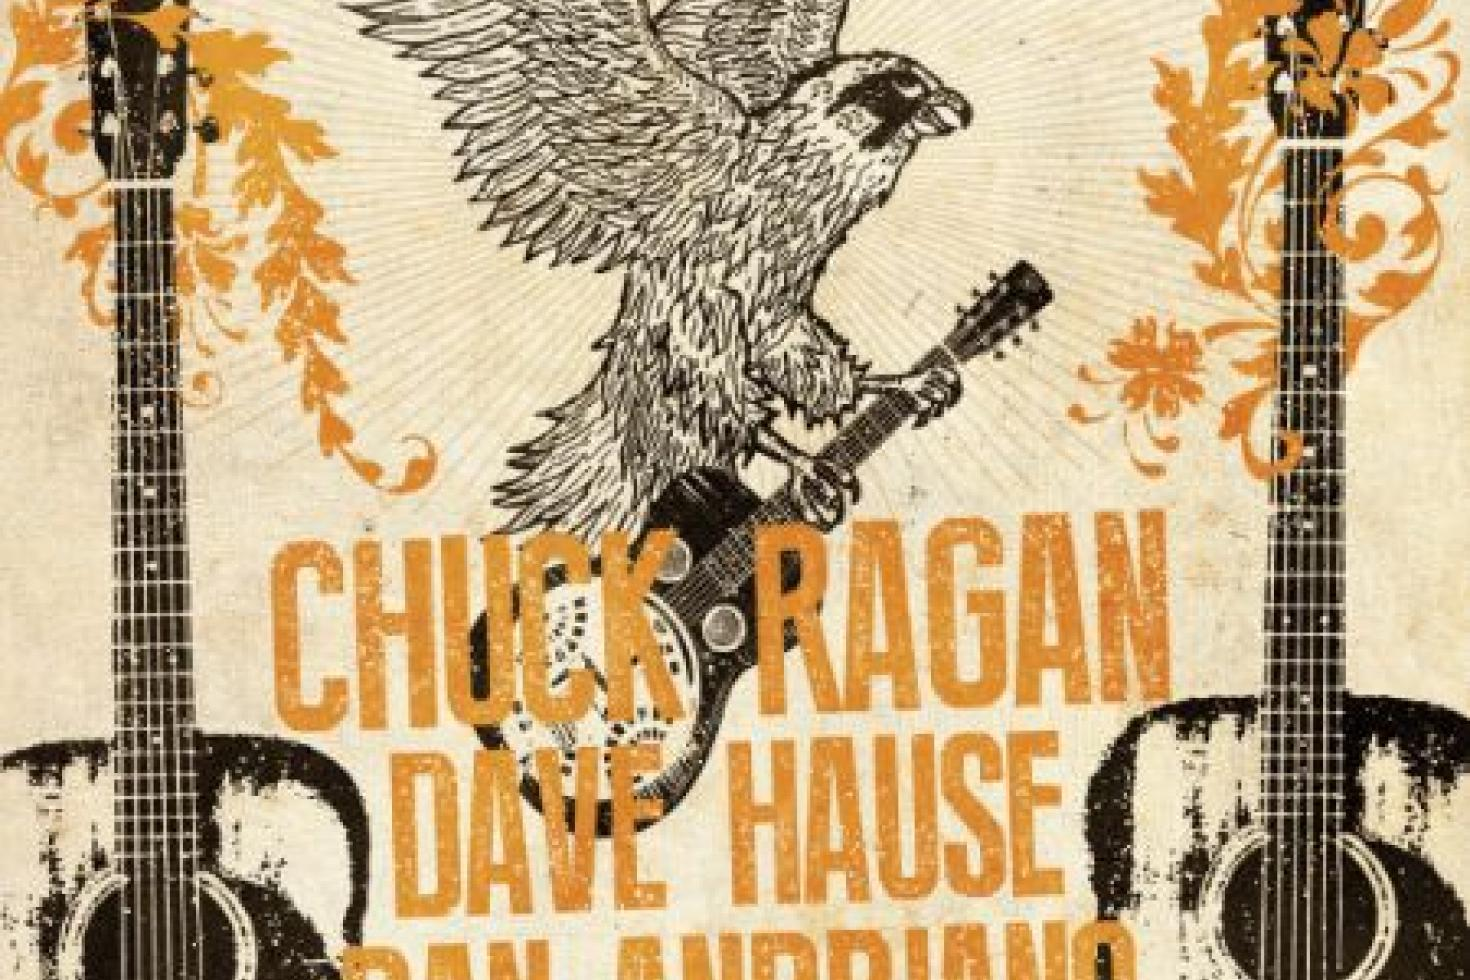 Chuck Ragan, Dan Andriano and Dave Hause celebrate an Evening of Revival